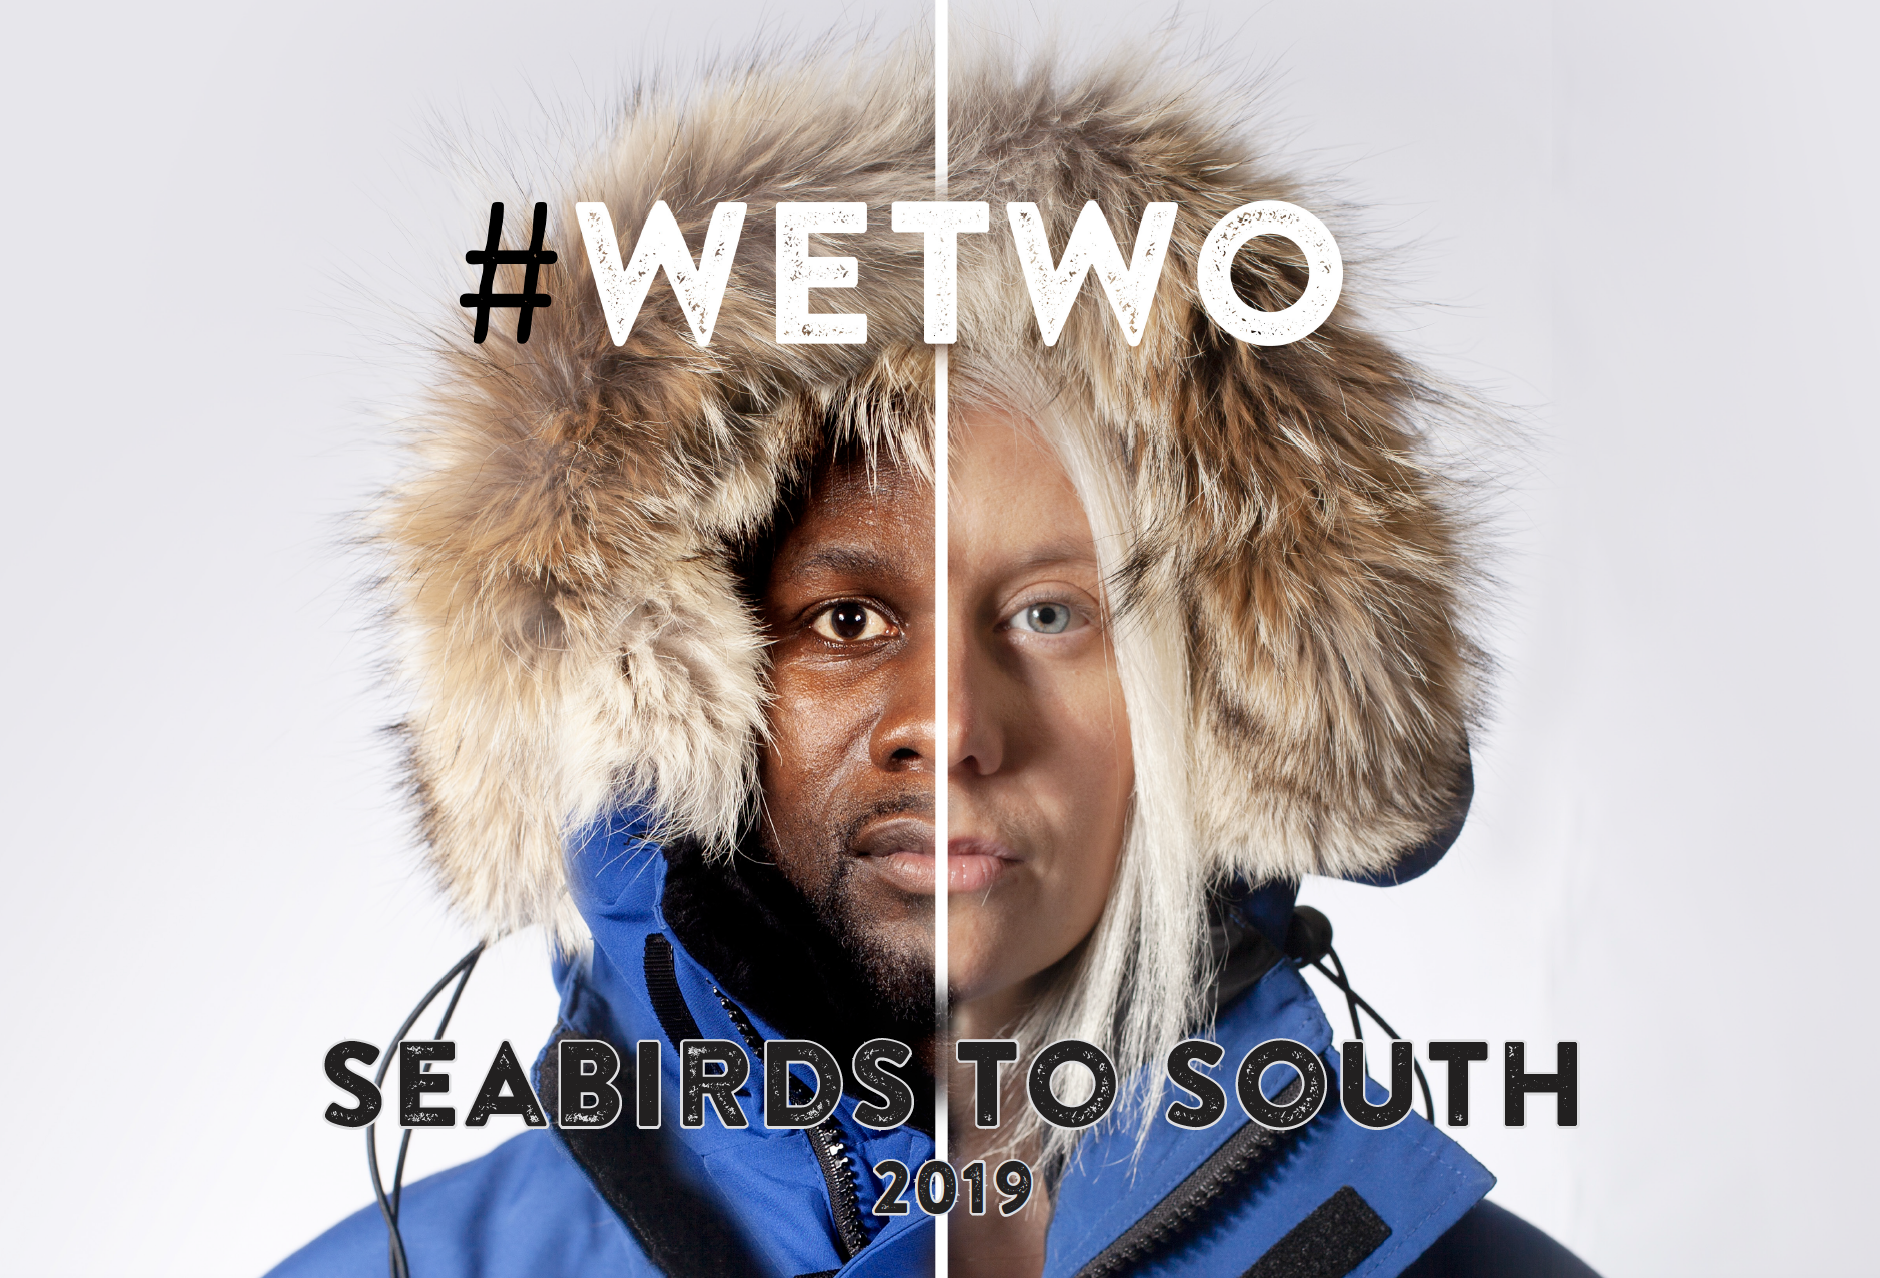 Seabirds to South – begins!